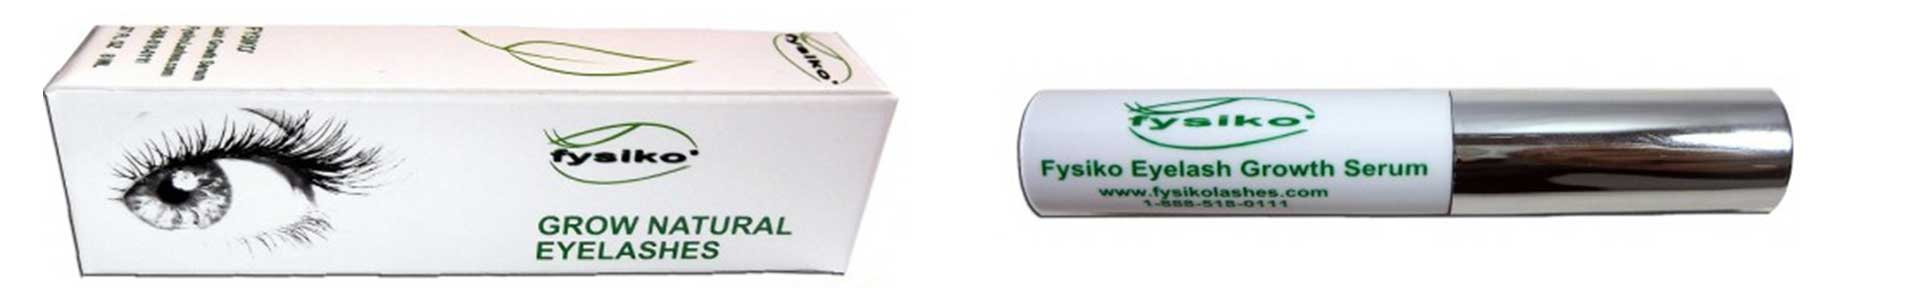 Fysiko Eyelash Growth Serum